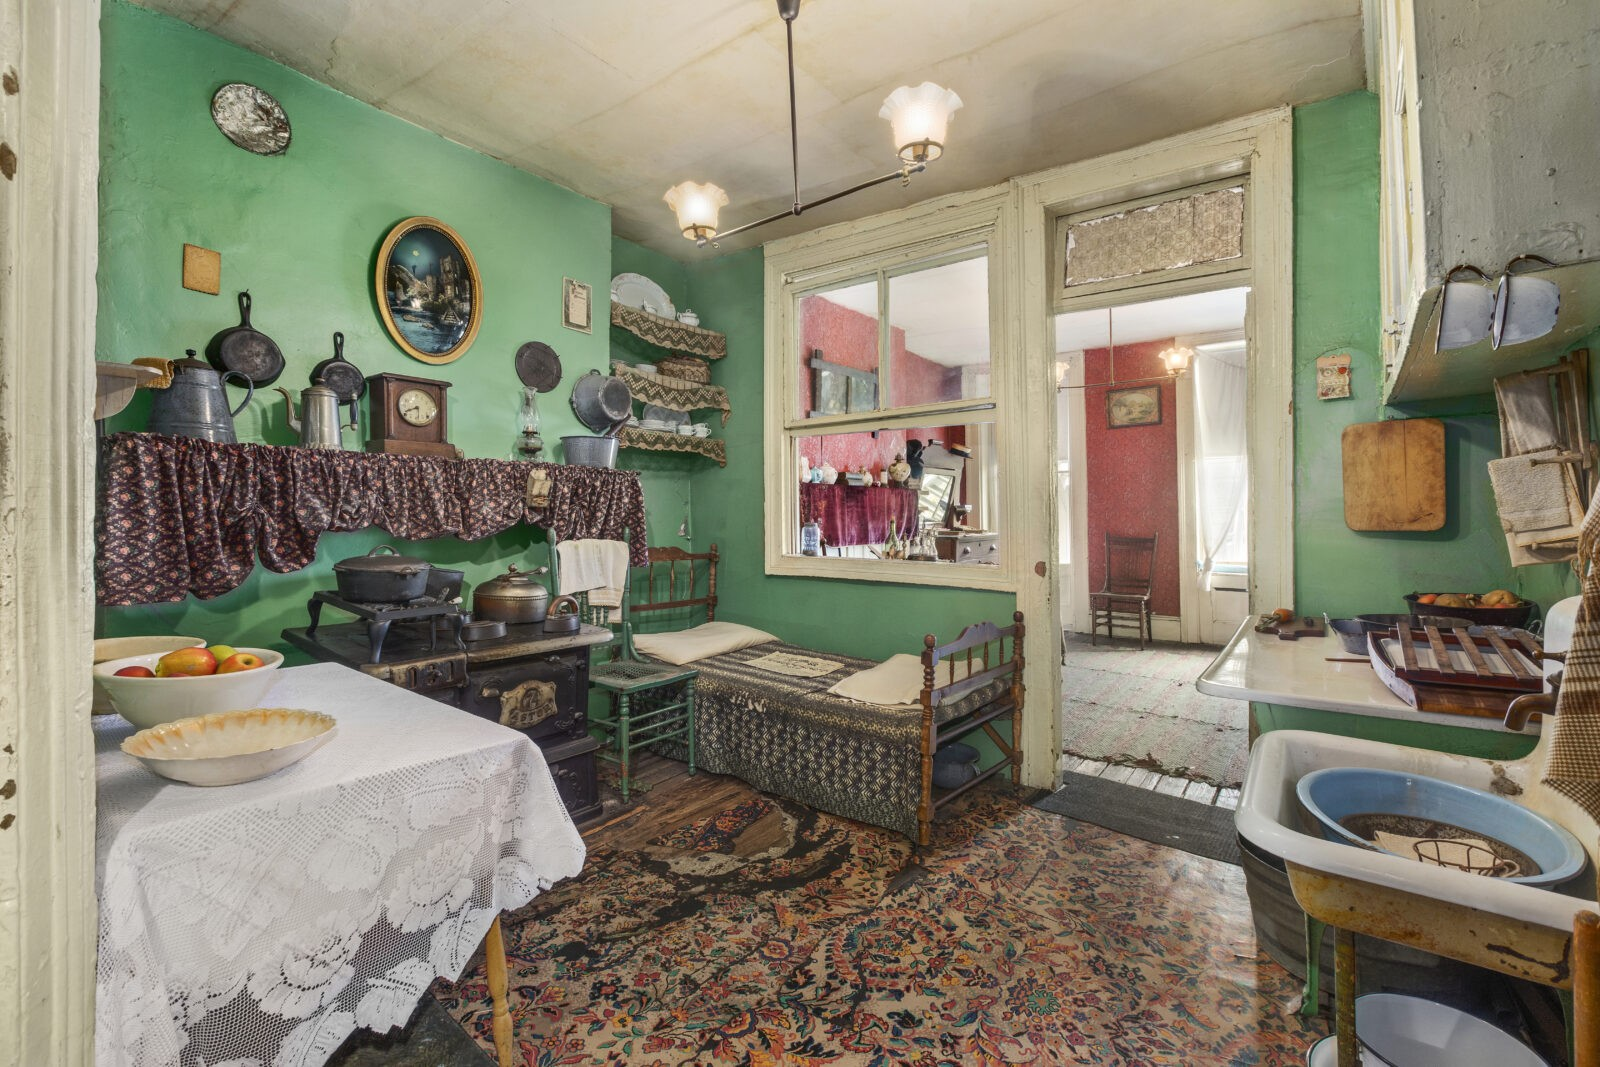 Color photo of the small Rogarshevsky family kitchen at 97 Orchard Street where a table with food is next to a stove, a chair, and a small bed